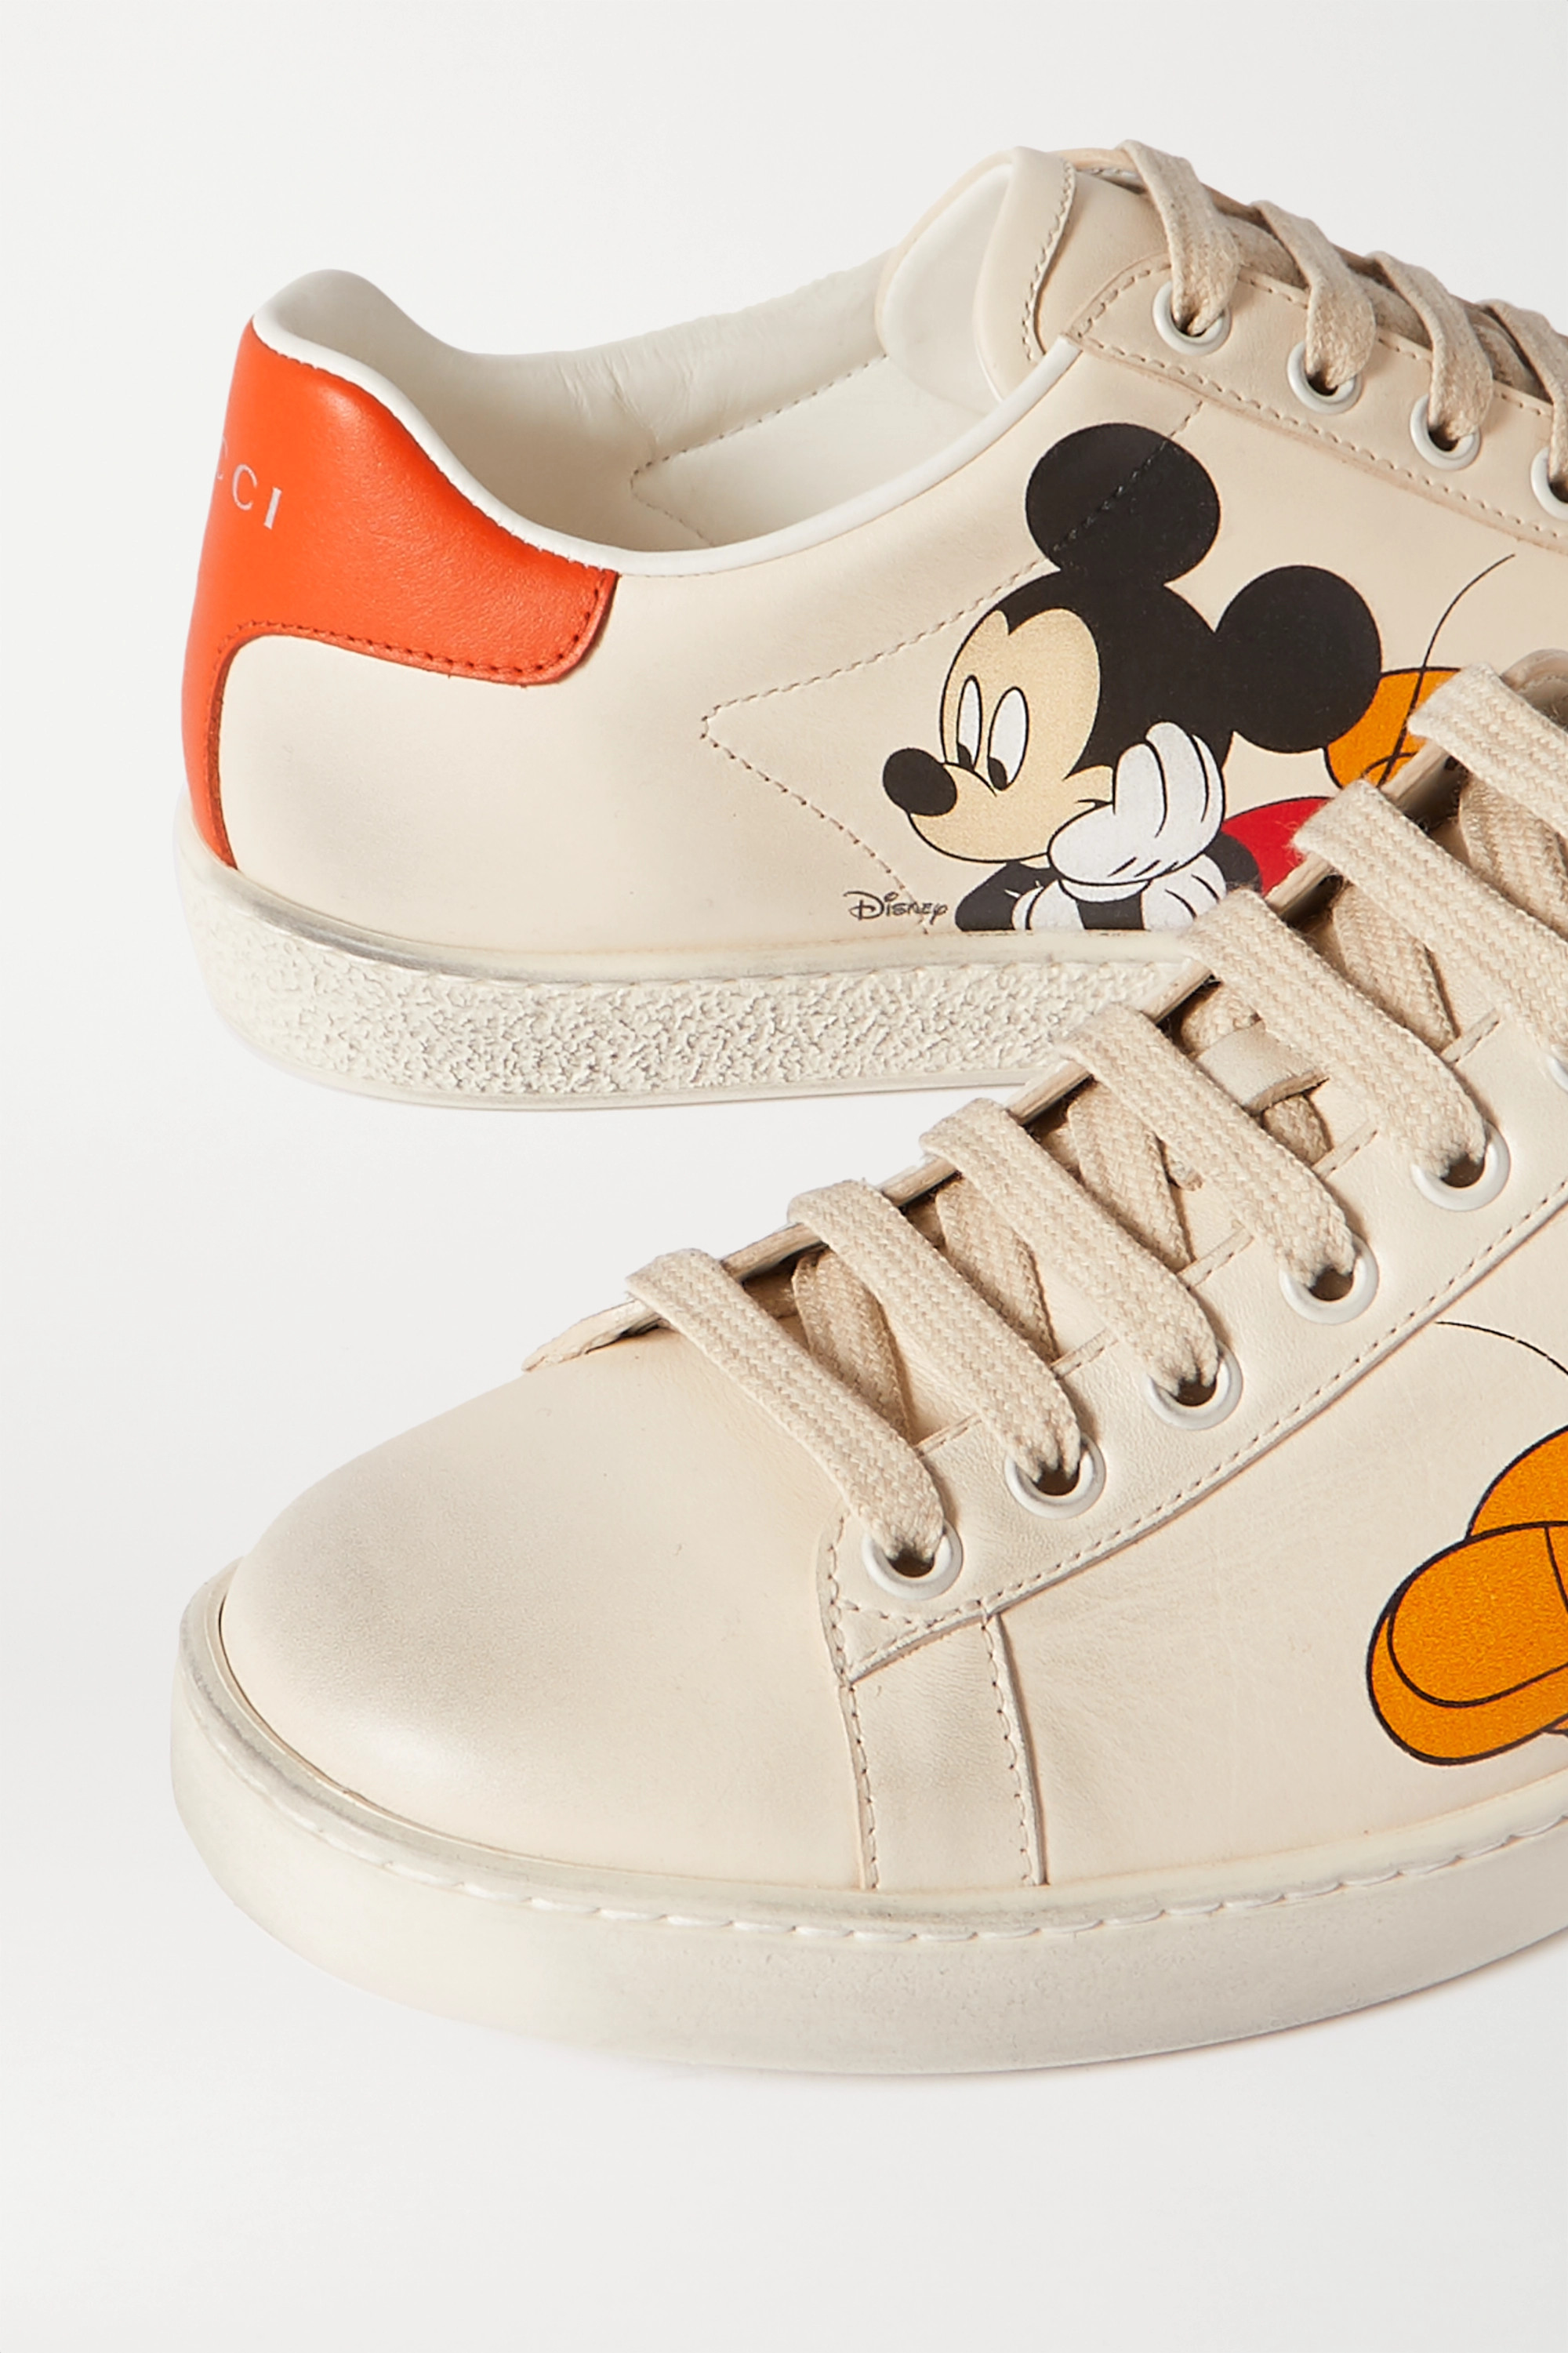 Gucci + Disney Ace printed leather sneakers